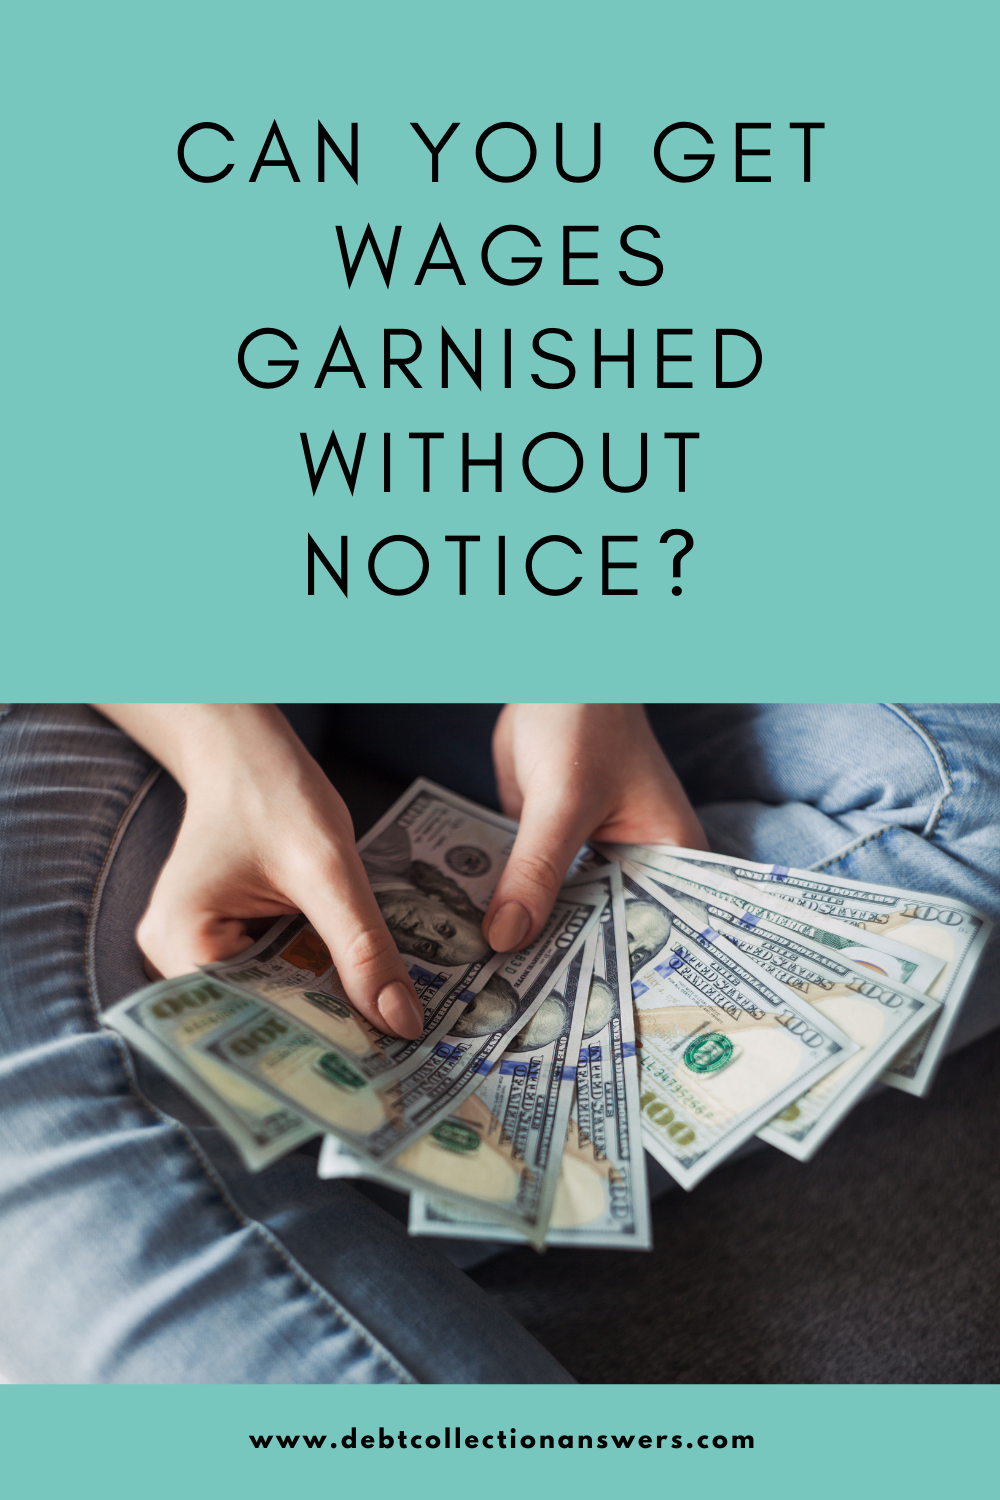 wages garnished without notice